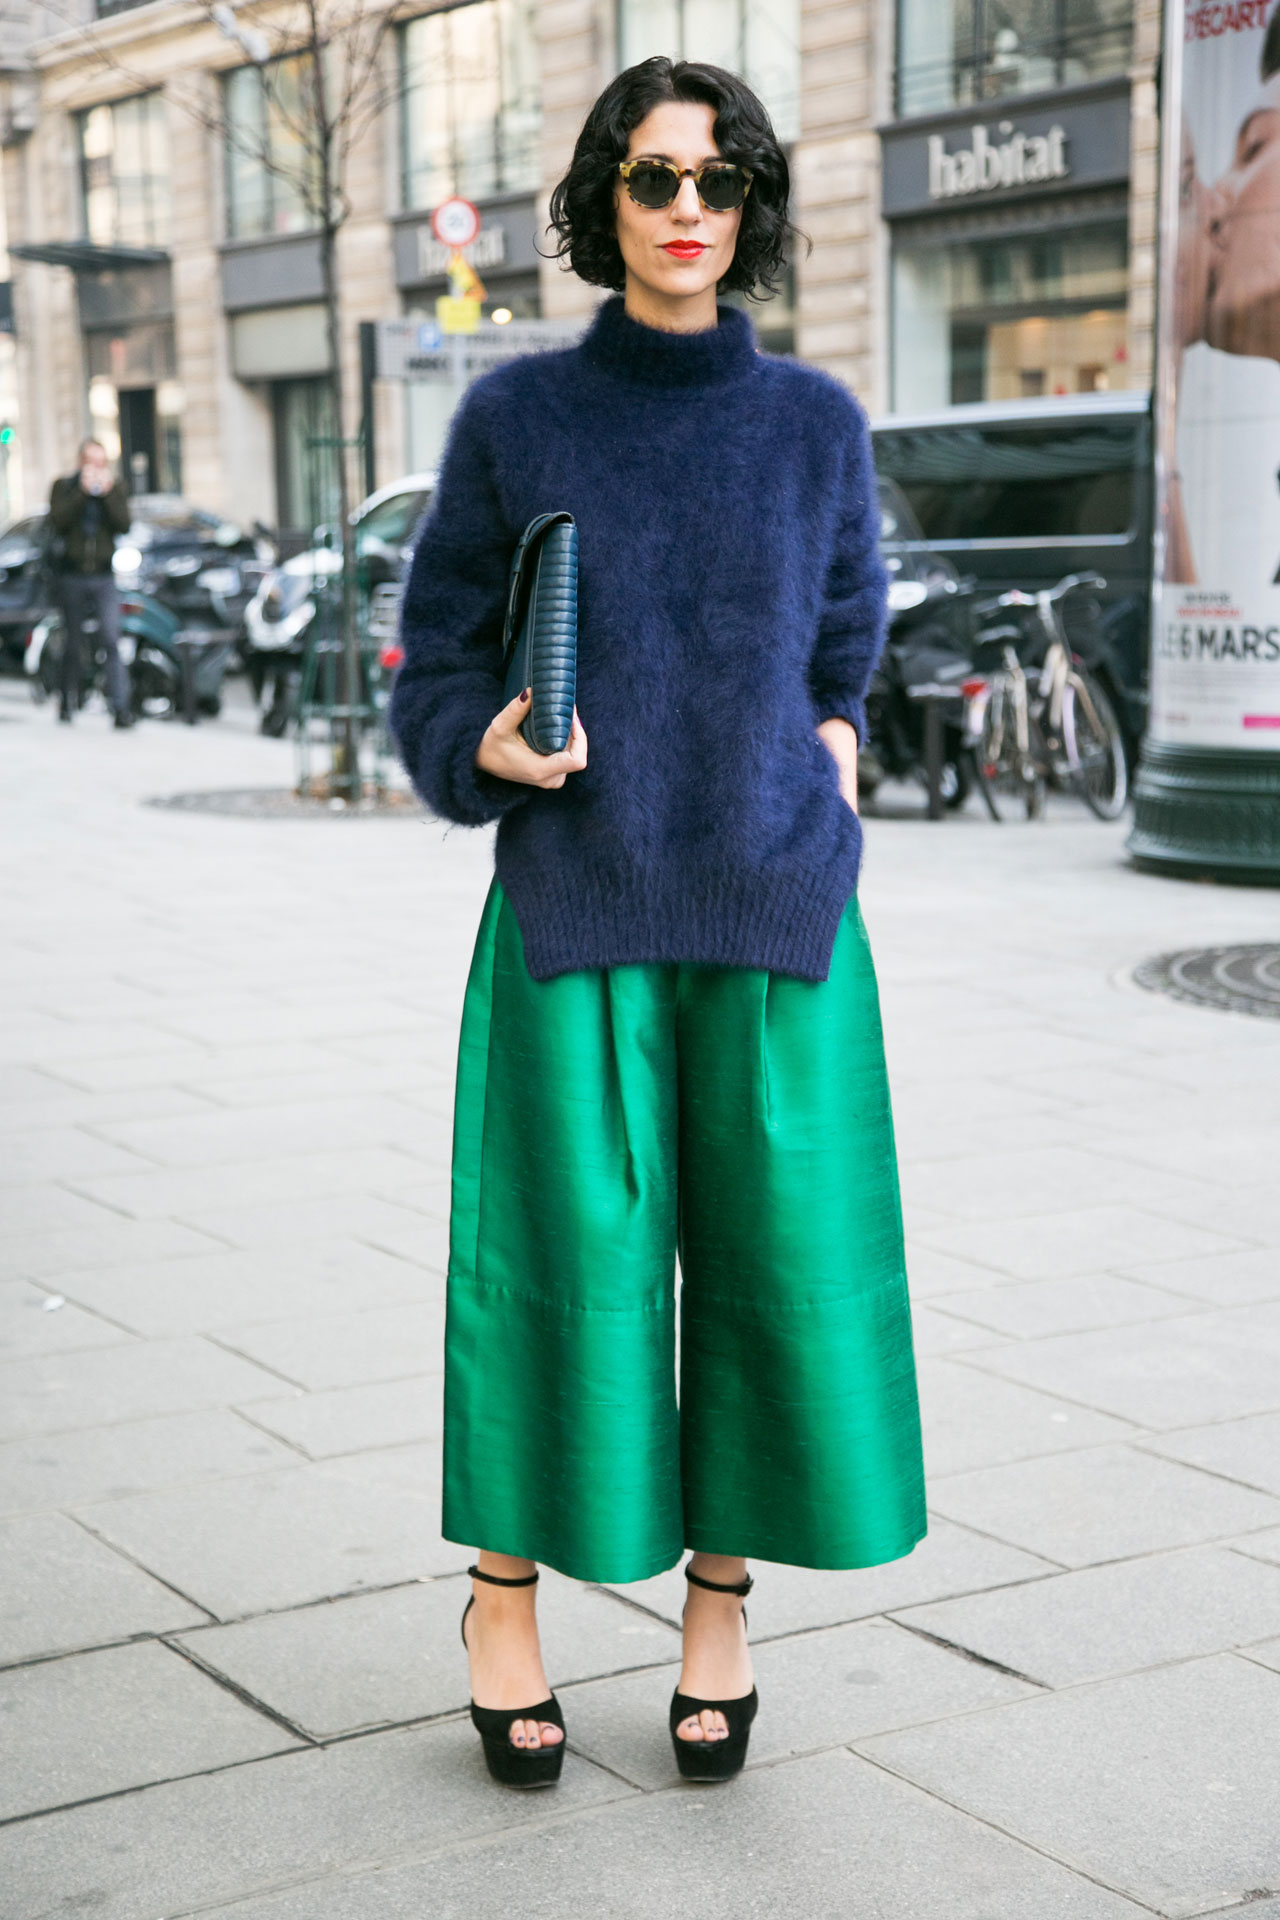 culottes-fw13-fashion-week-paris-new-york-milan-20130325_0008